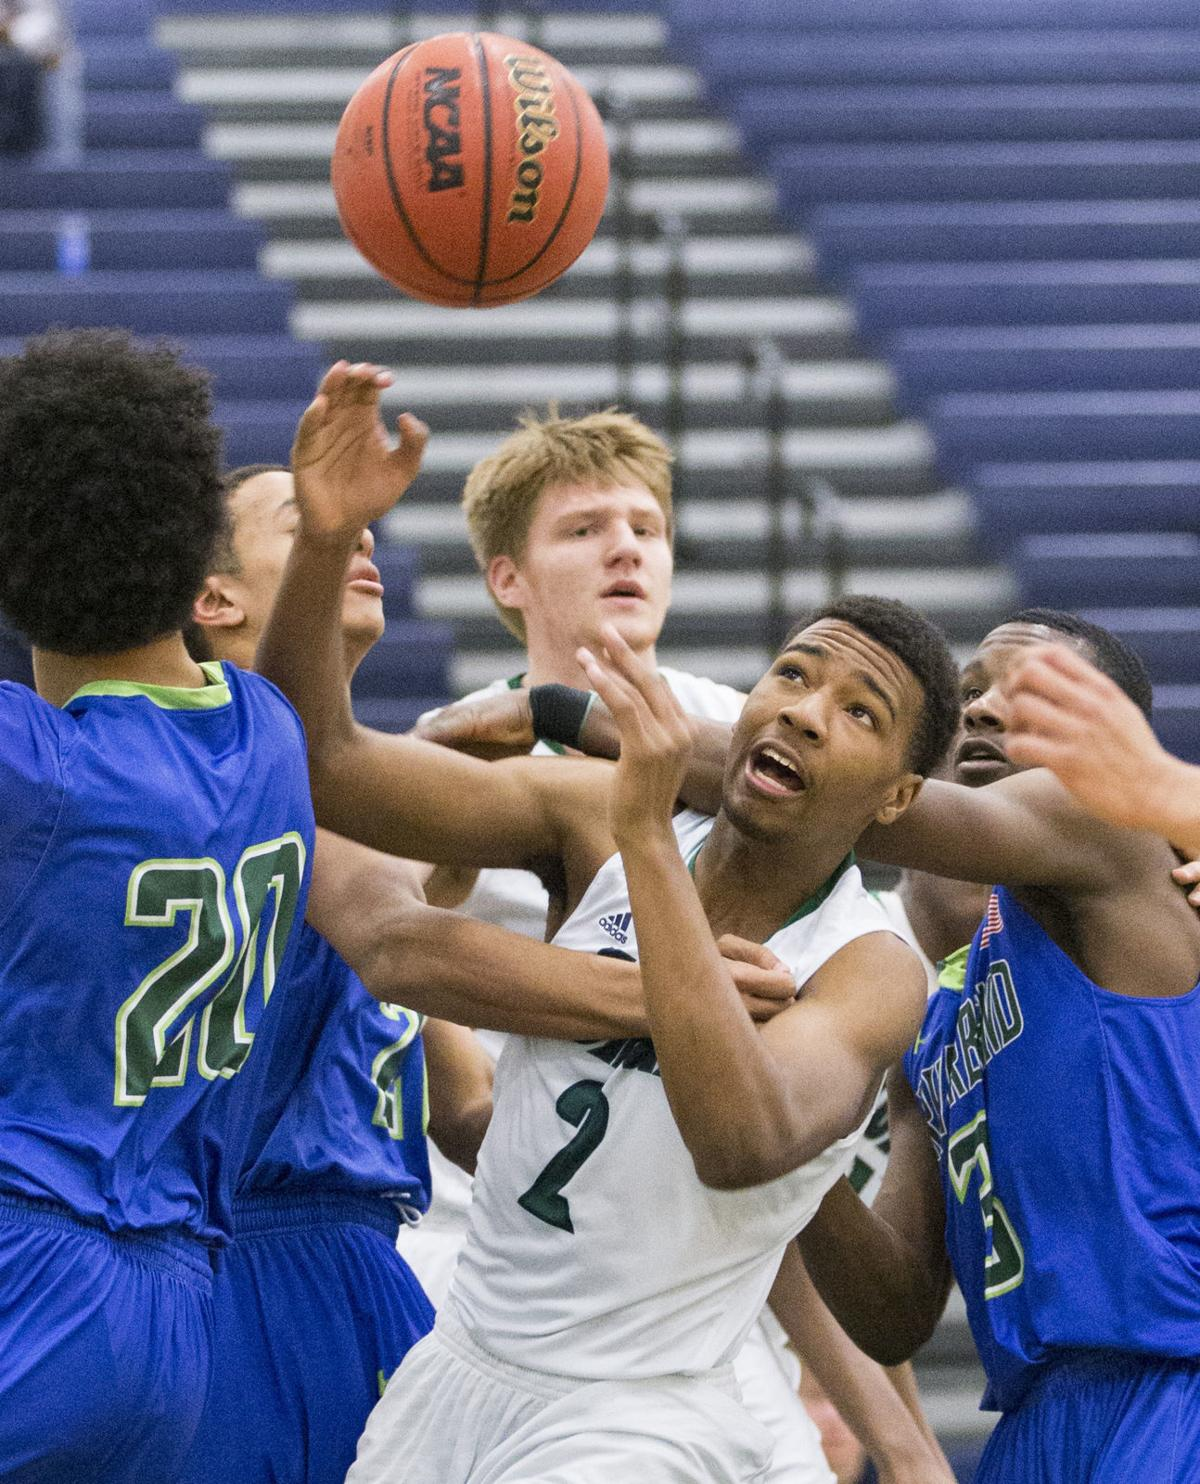 Colonial Forge vs Riverbend boys basketball